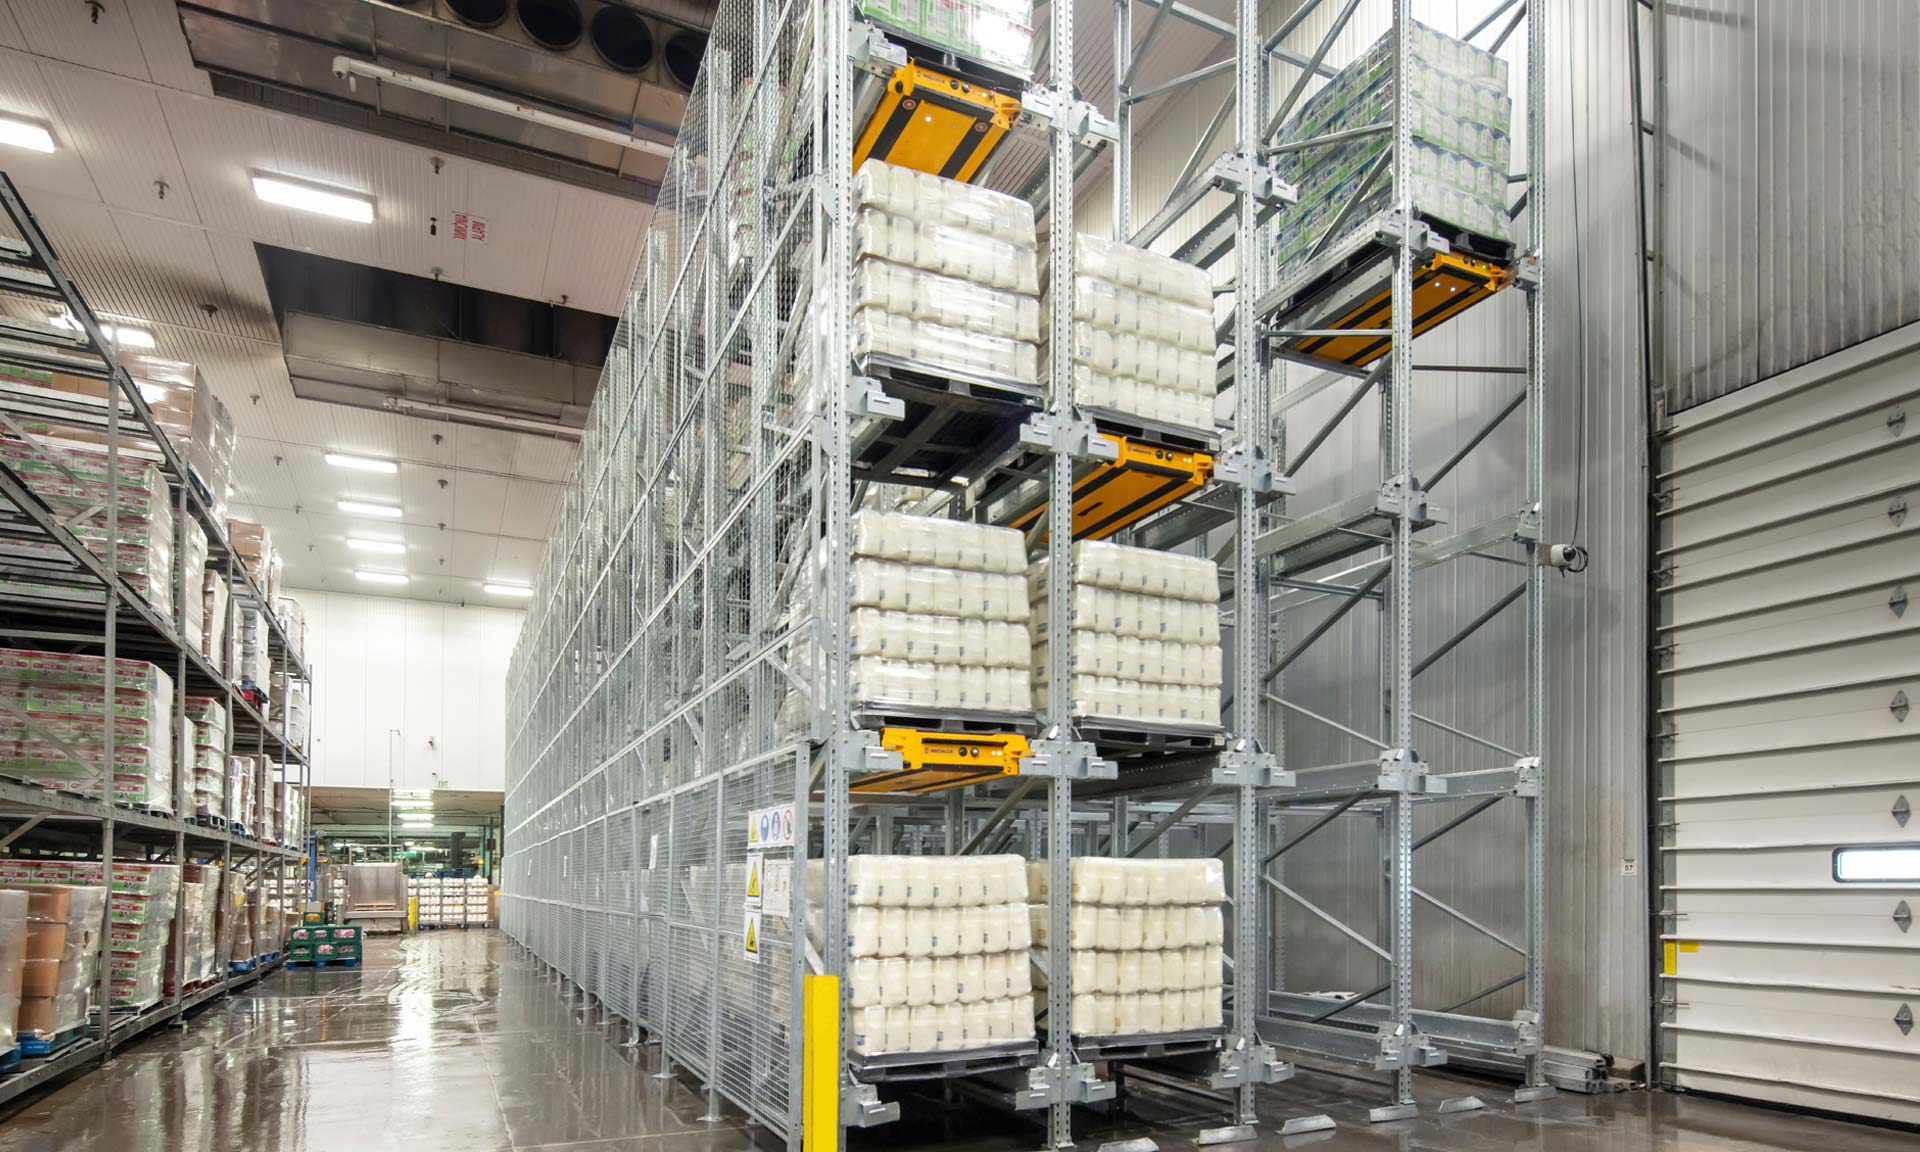 The Pallet Shuttle doubles capacity